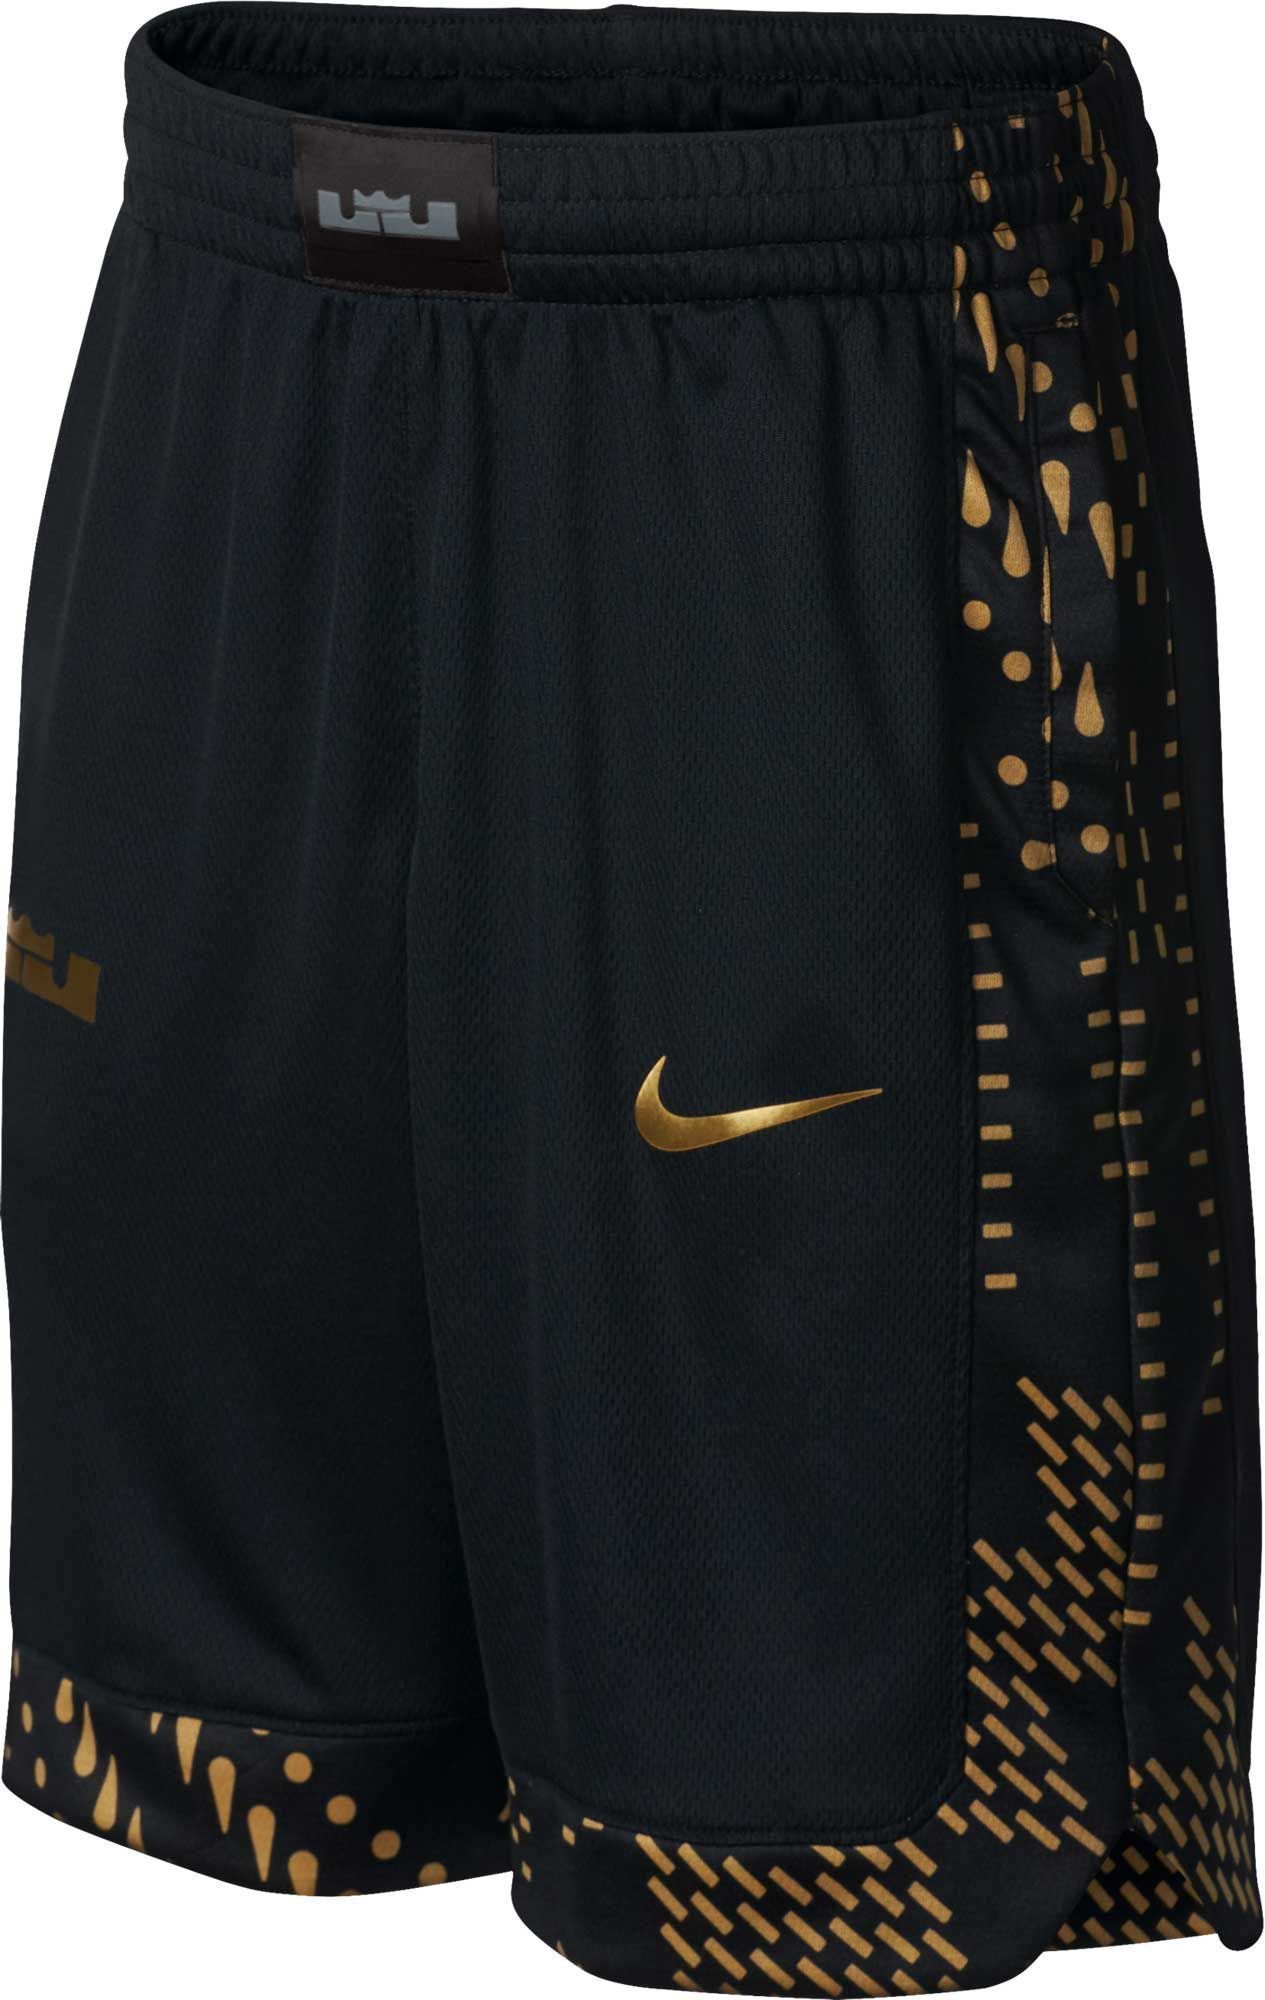 5c31ec3c196cdf Nike Boys  Dry LeBron Graphic Basketball Shorts